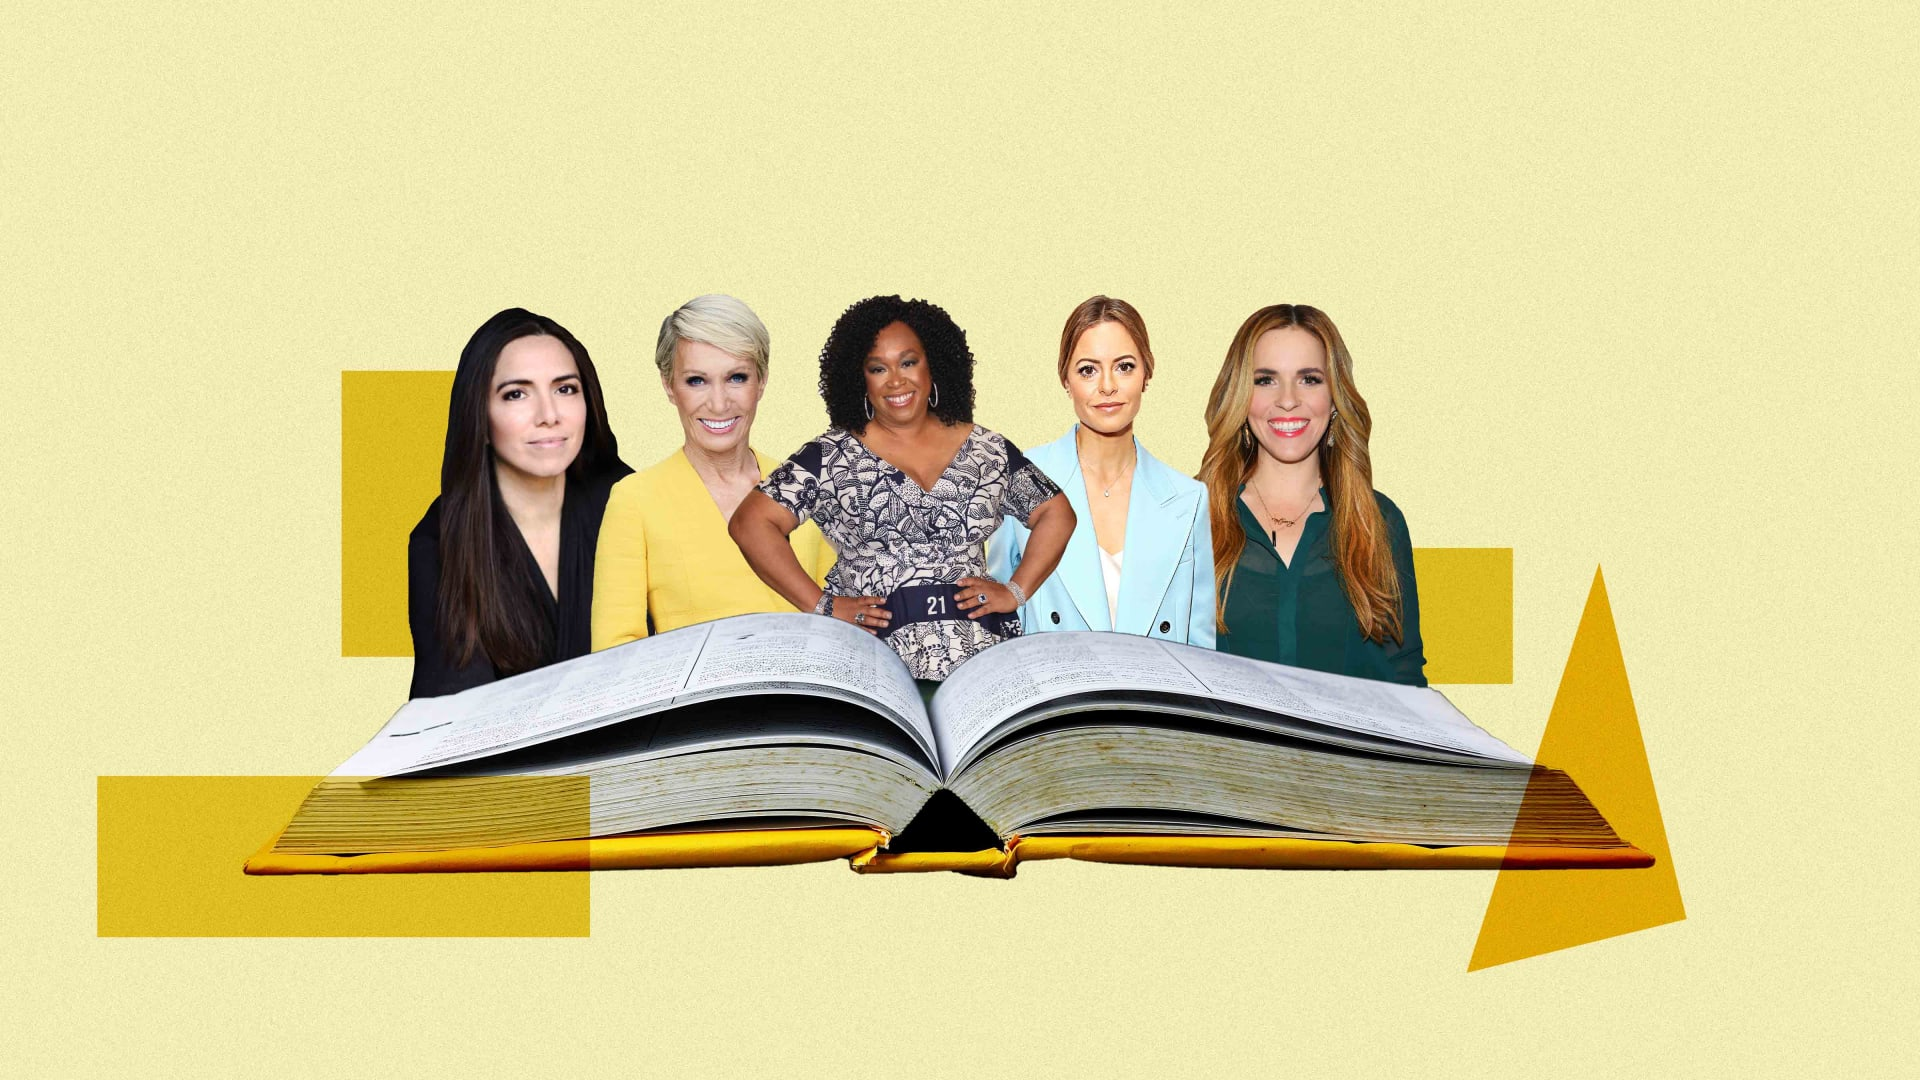 5 Inspiring Books By Top Women Leaders